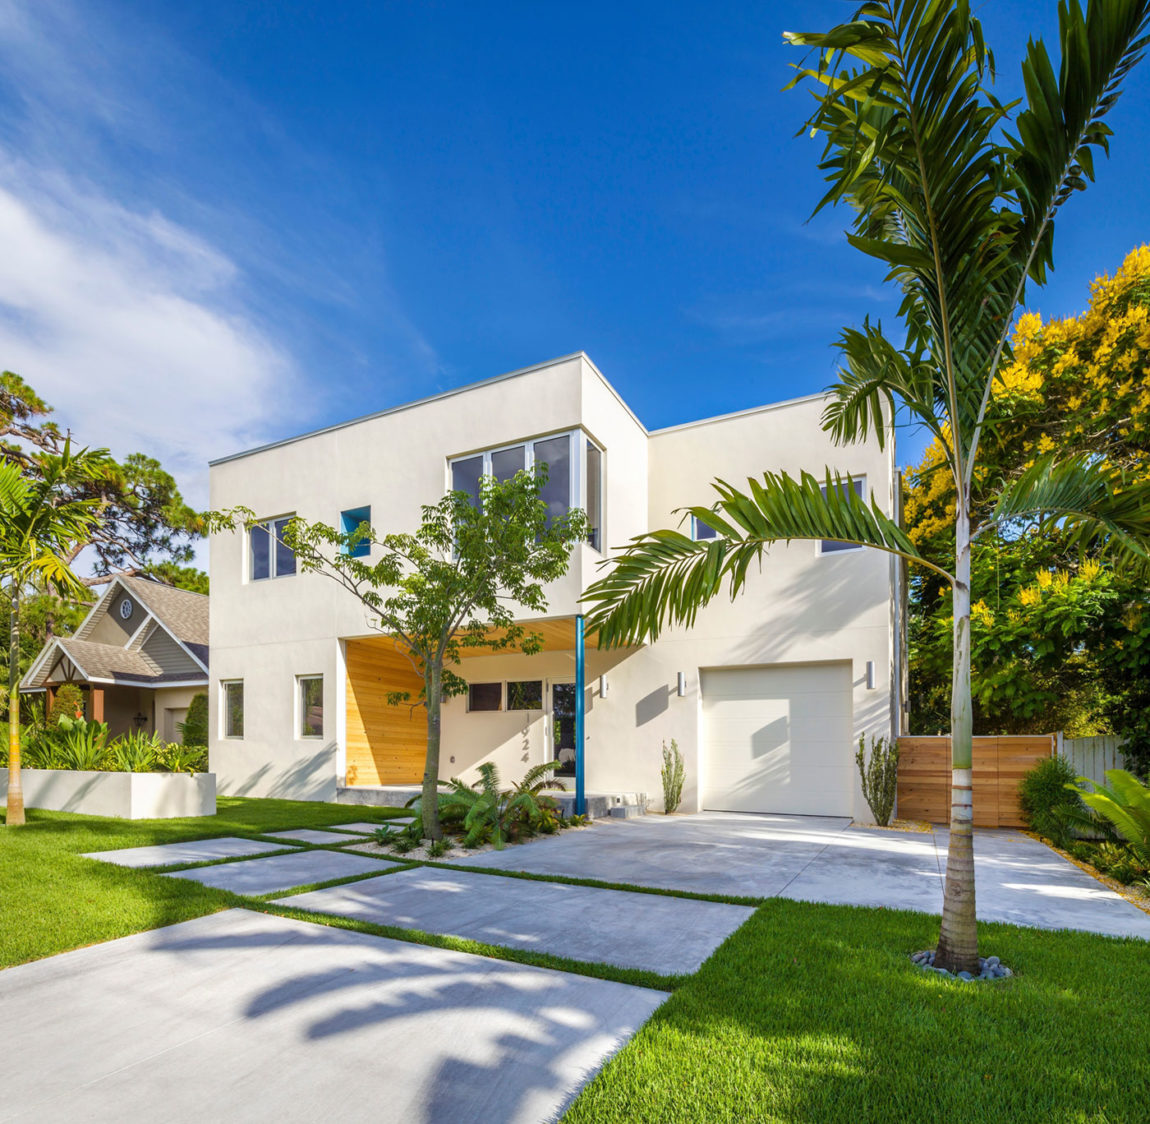 Bougainvillea House by Traction Architecture (1)